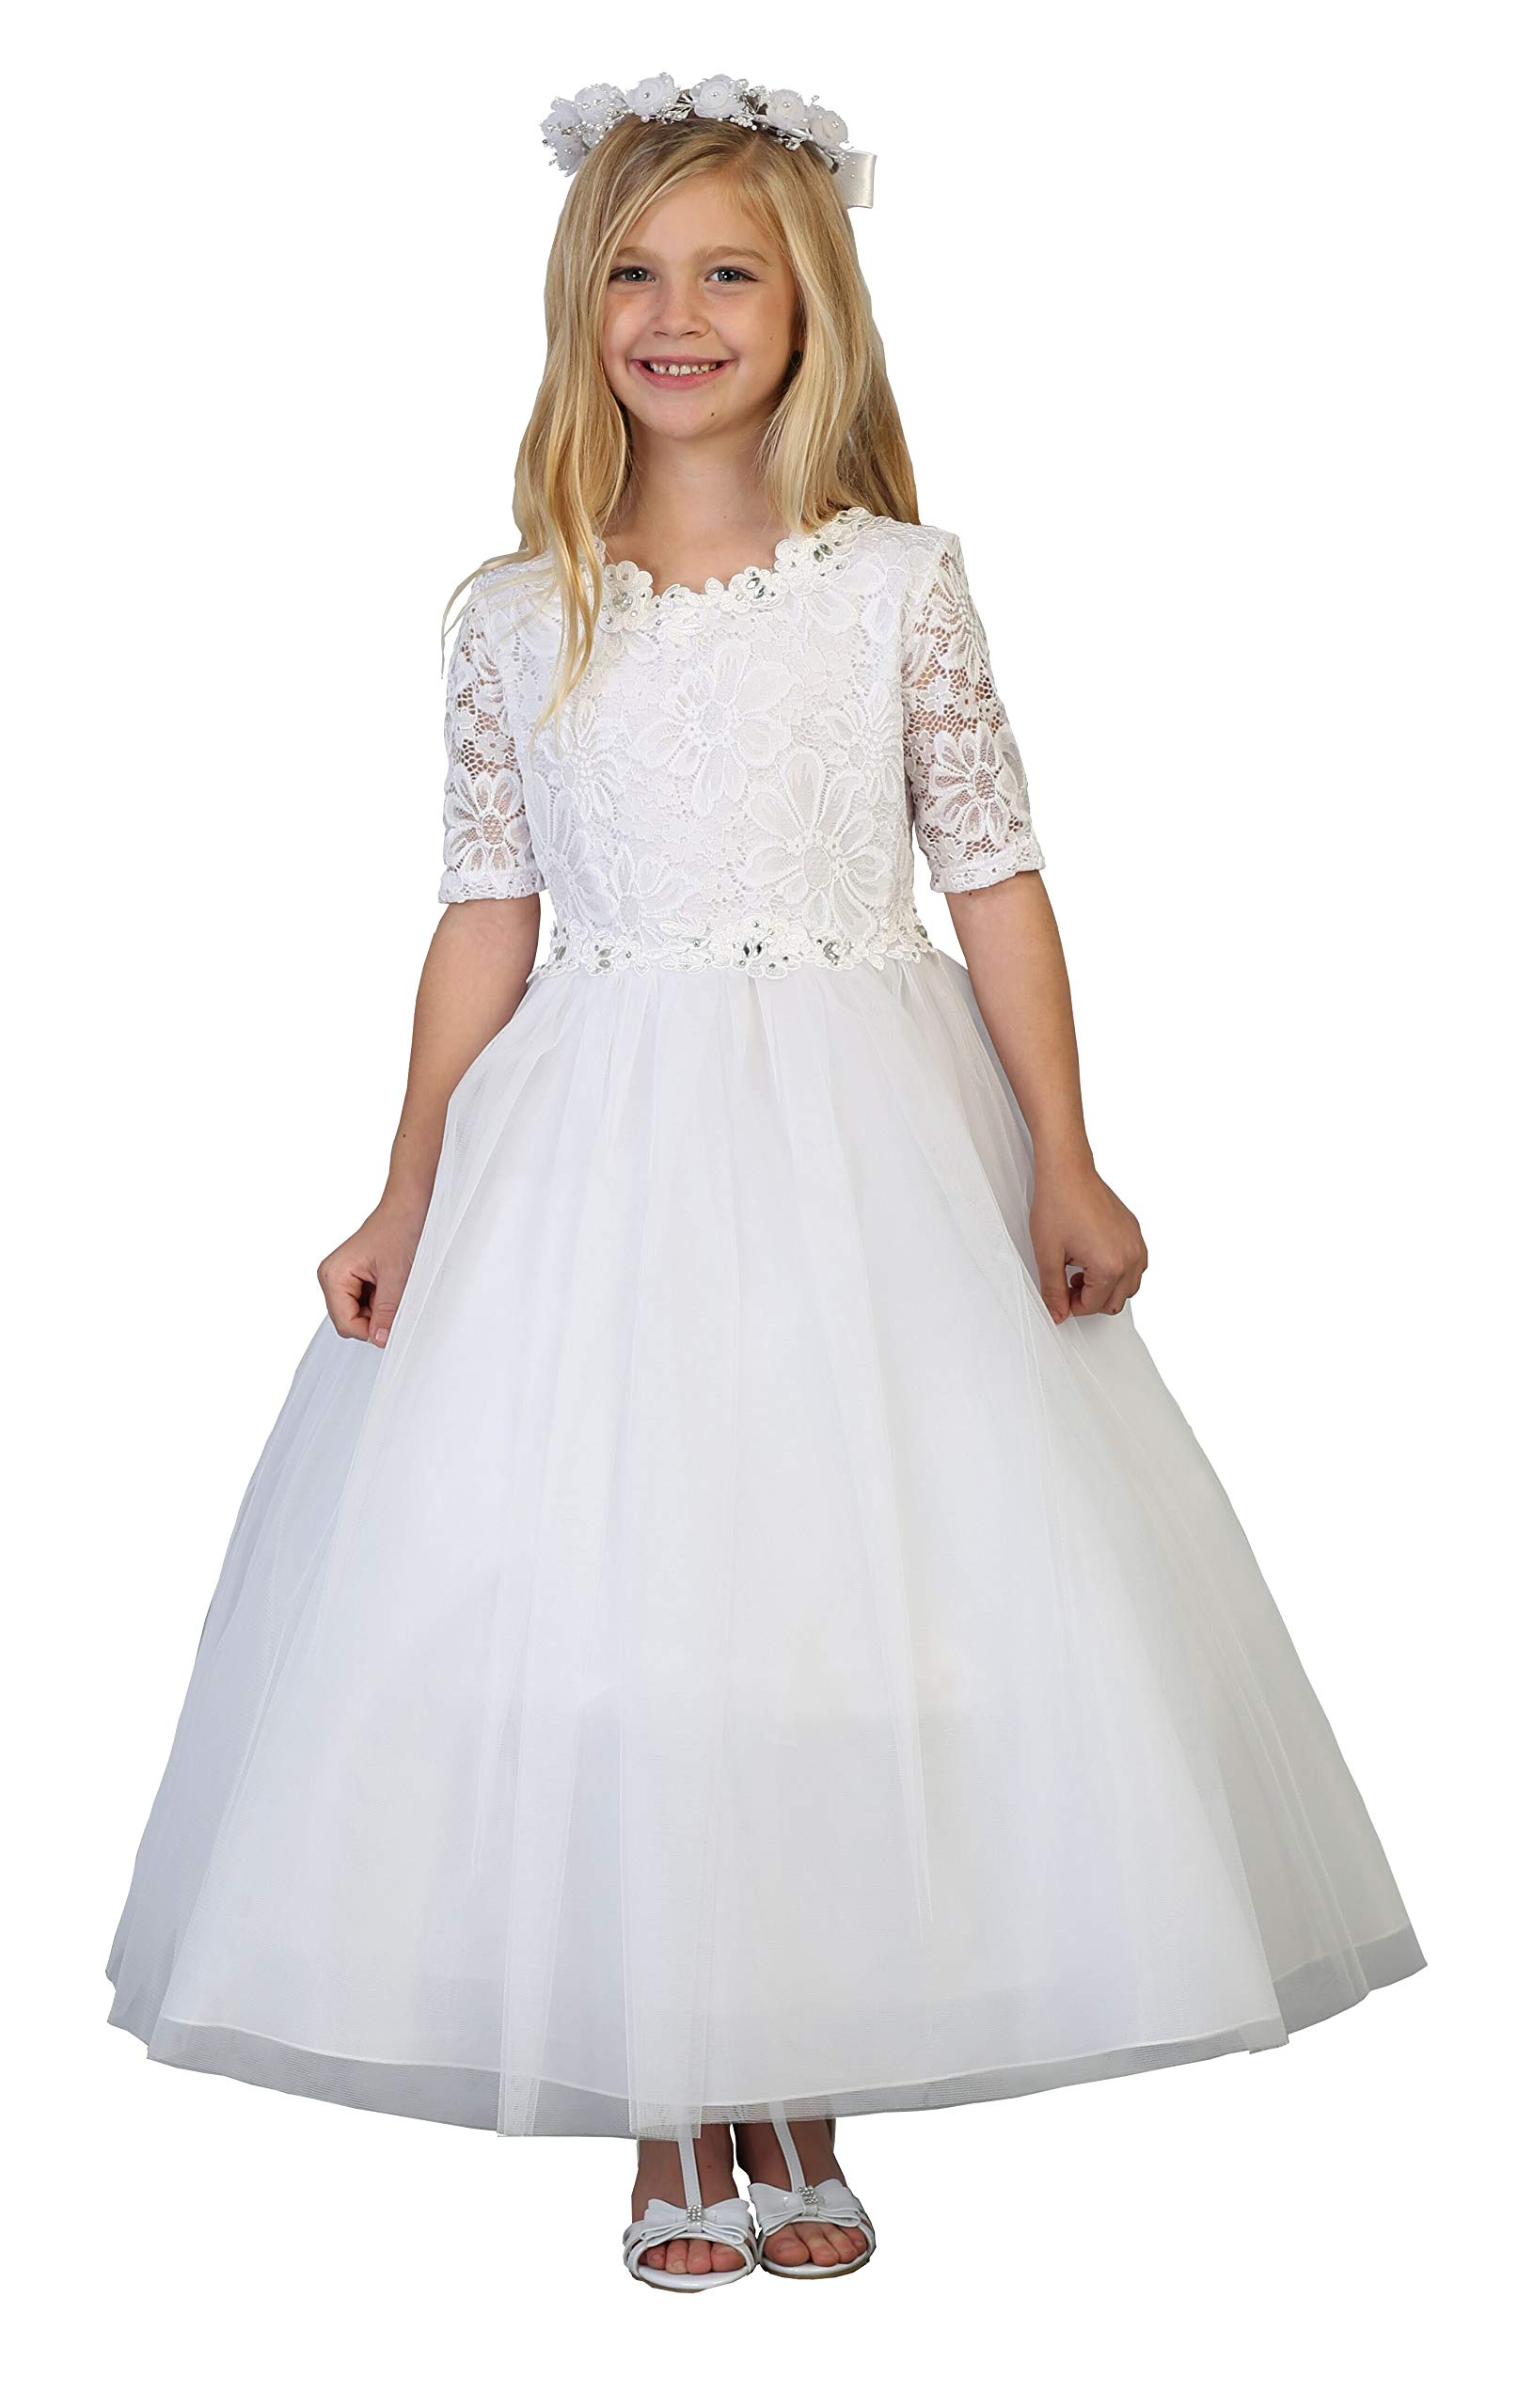 Big Girls' White First Communion Lace Tulle Half Sleeves Flower Girl Pageant Dress USA 3854 Size 24